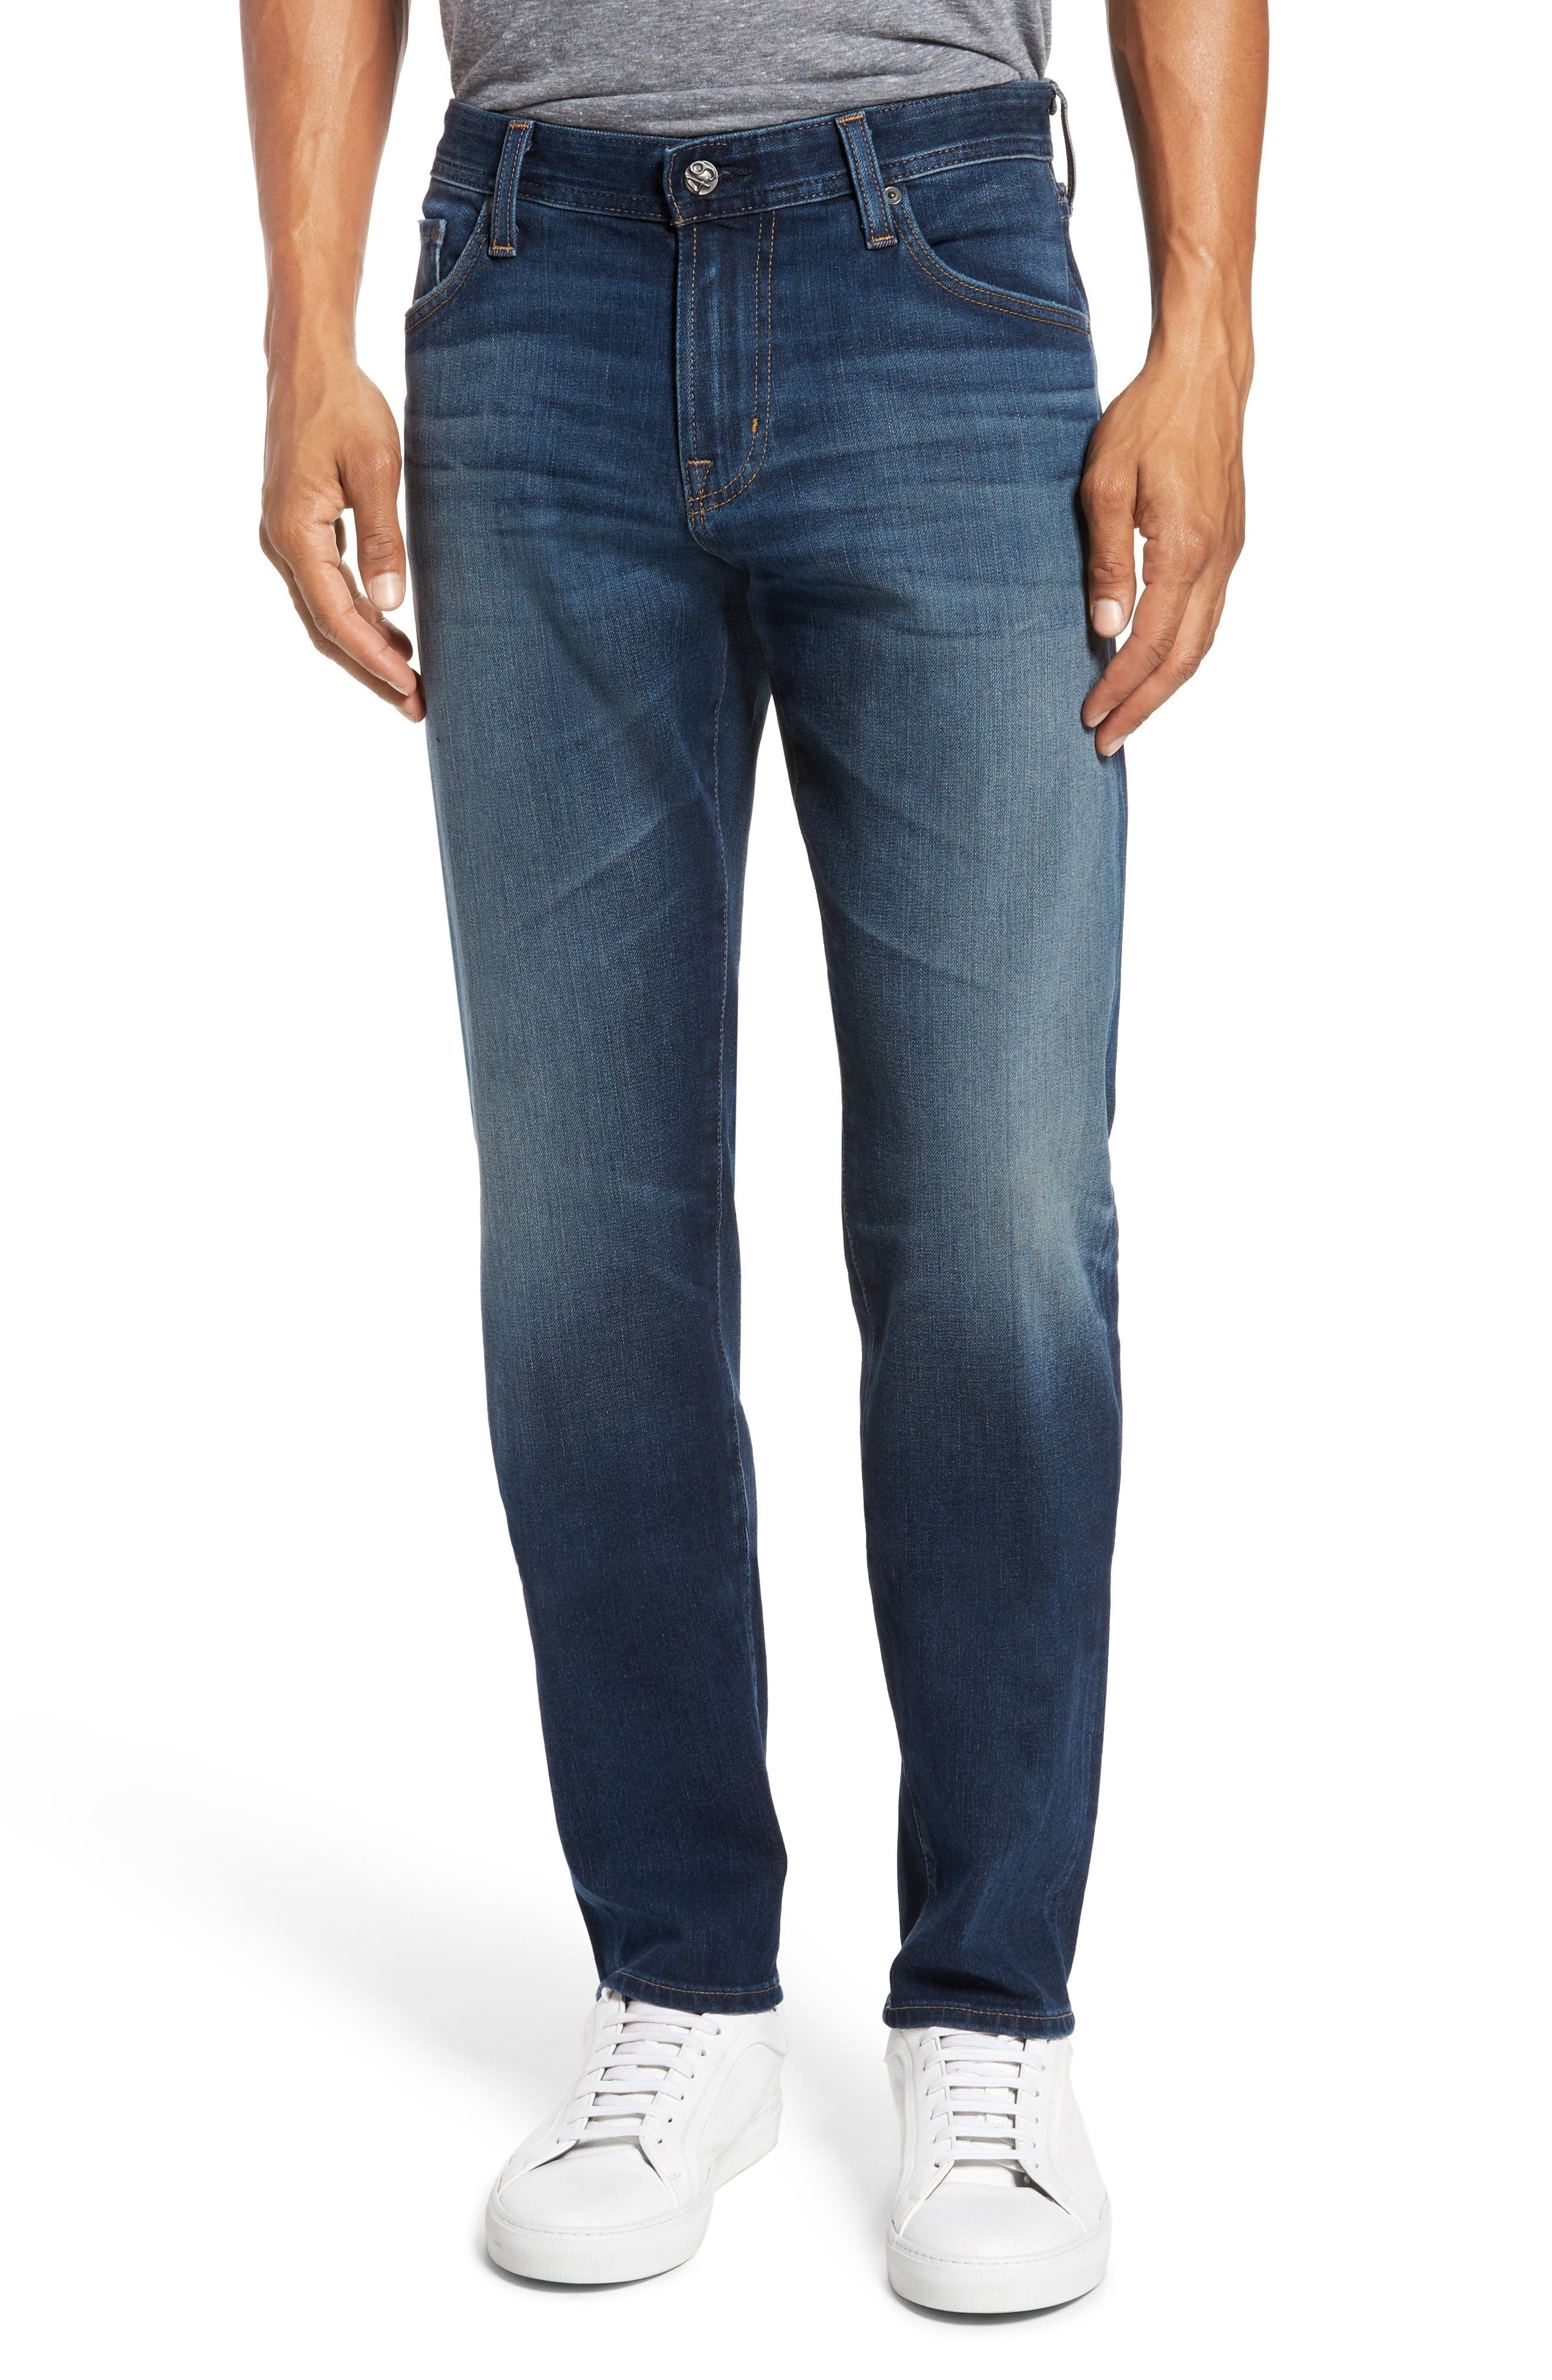 Graduate Slim Straight Fit Jeans,                             Main thumbnail 1, color,                             10 Years Shortcut